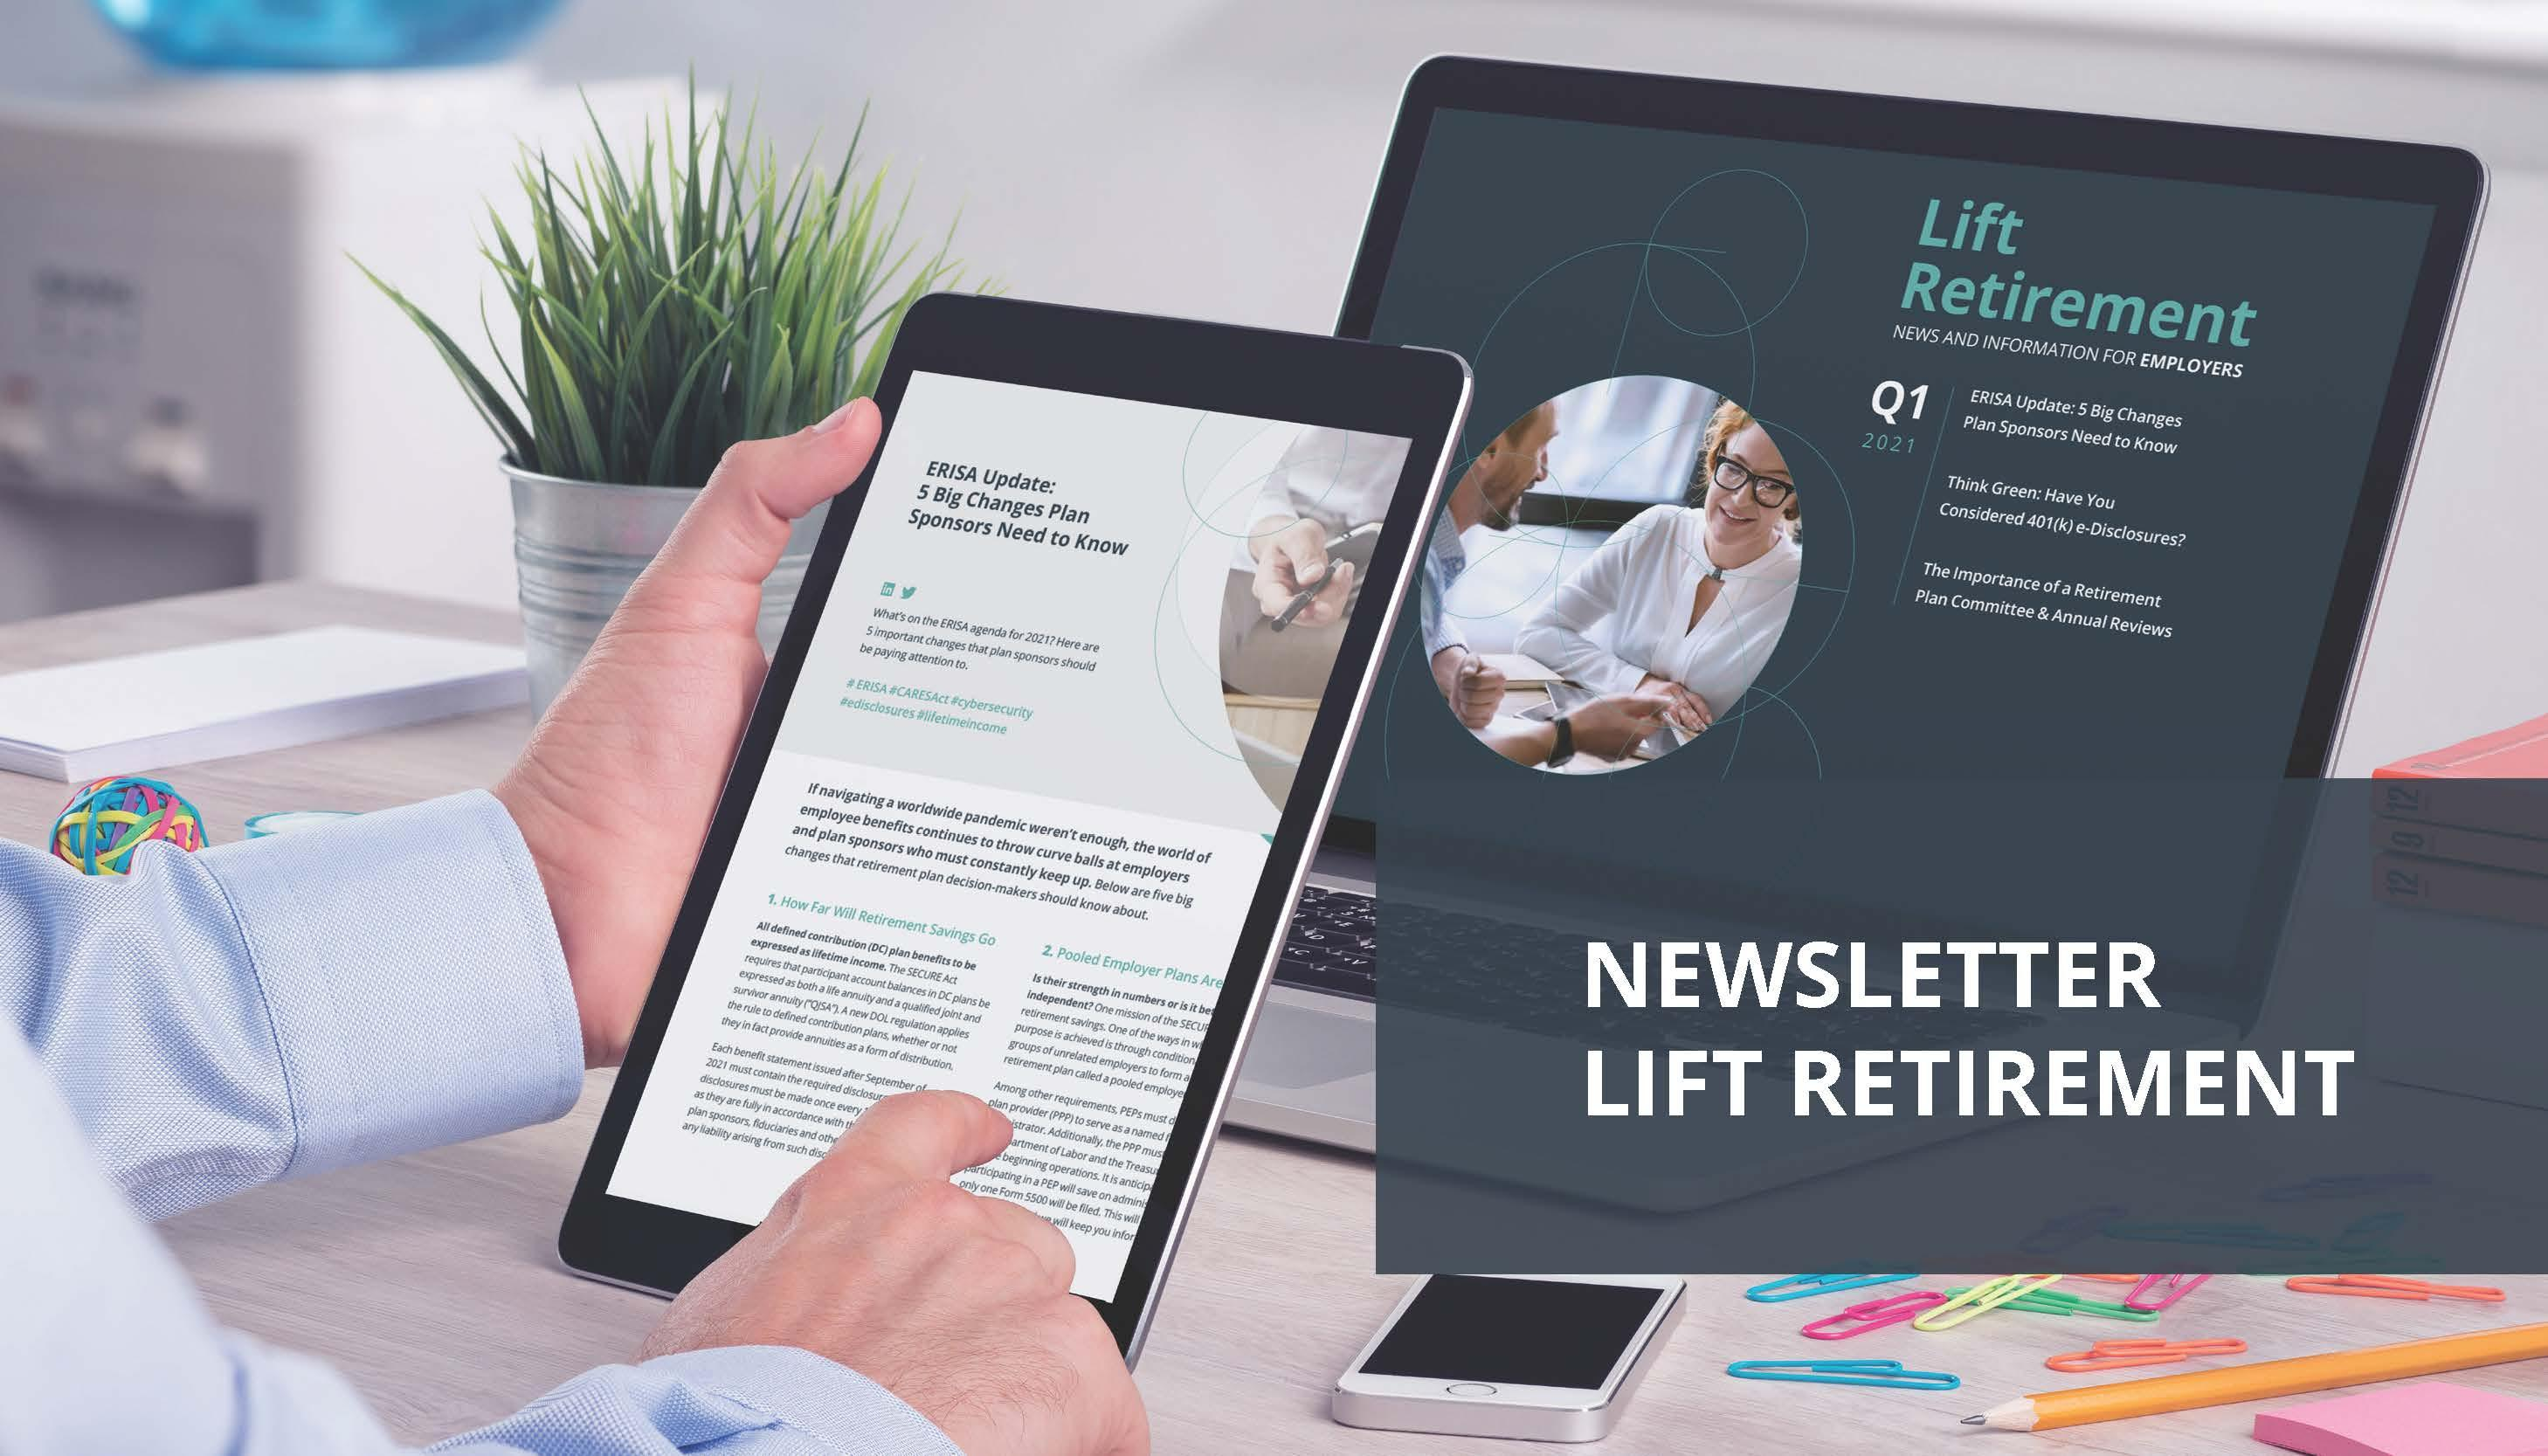 Q1 2021 Newsletter - Lift Retirement  Thumbnail